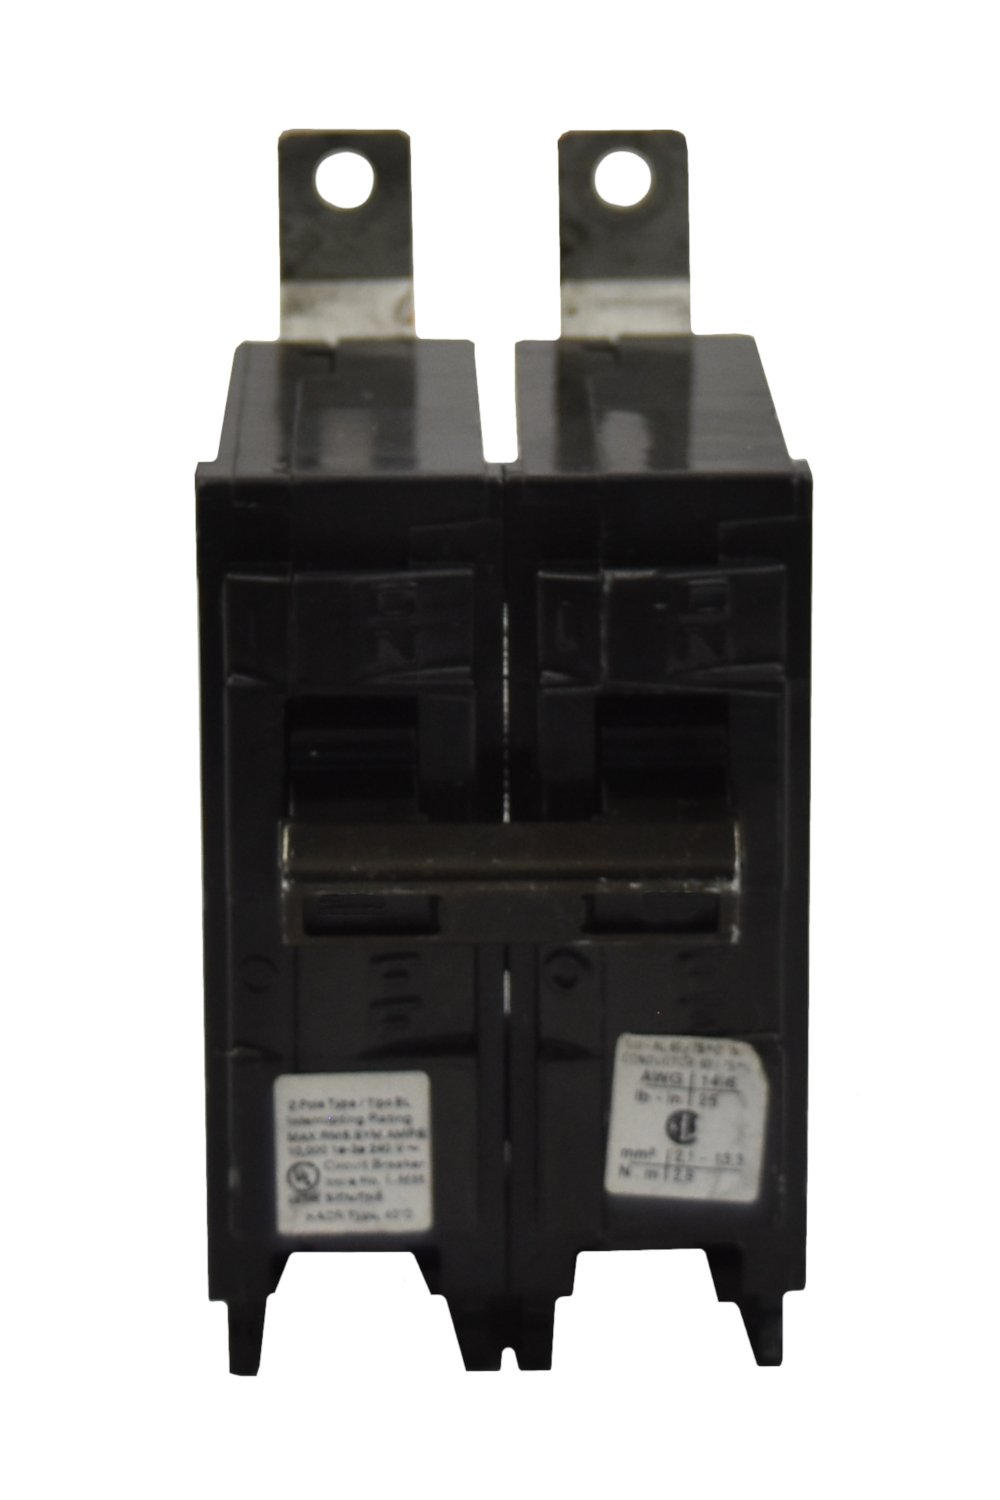 Siemens B290H Circuit Breakers Molded Case